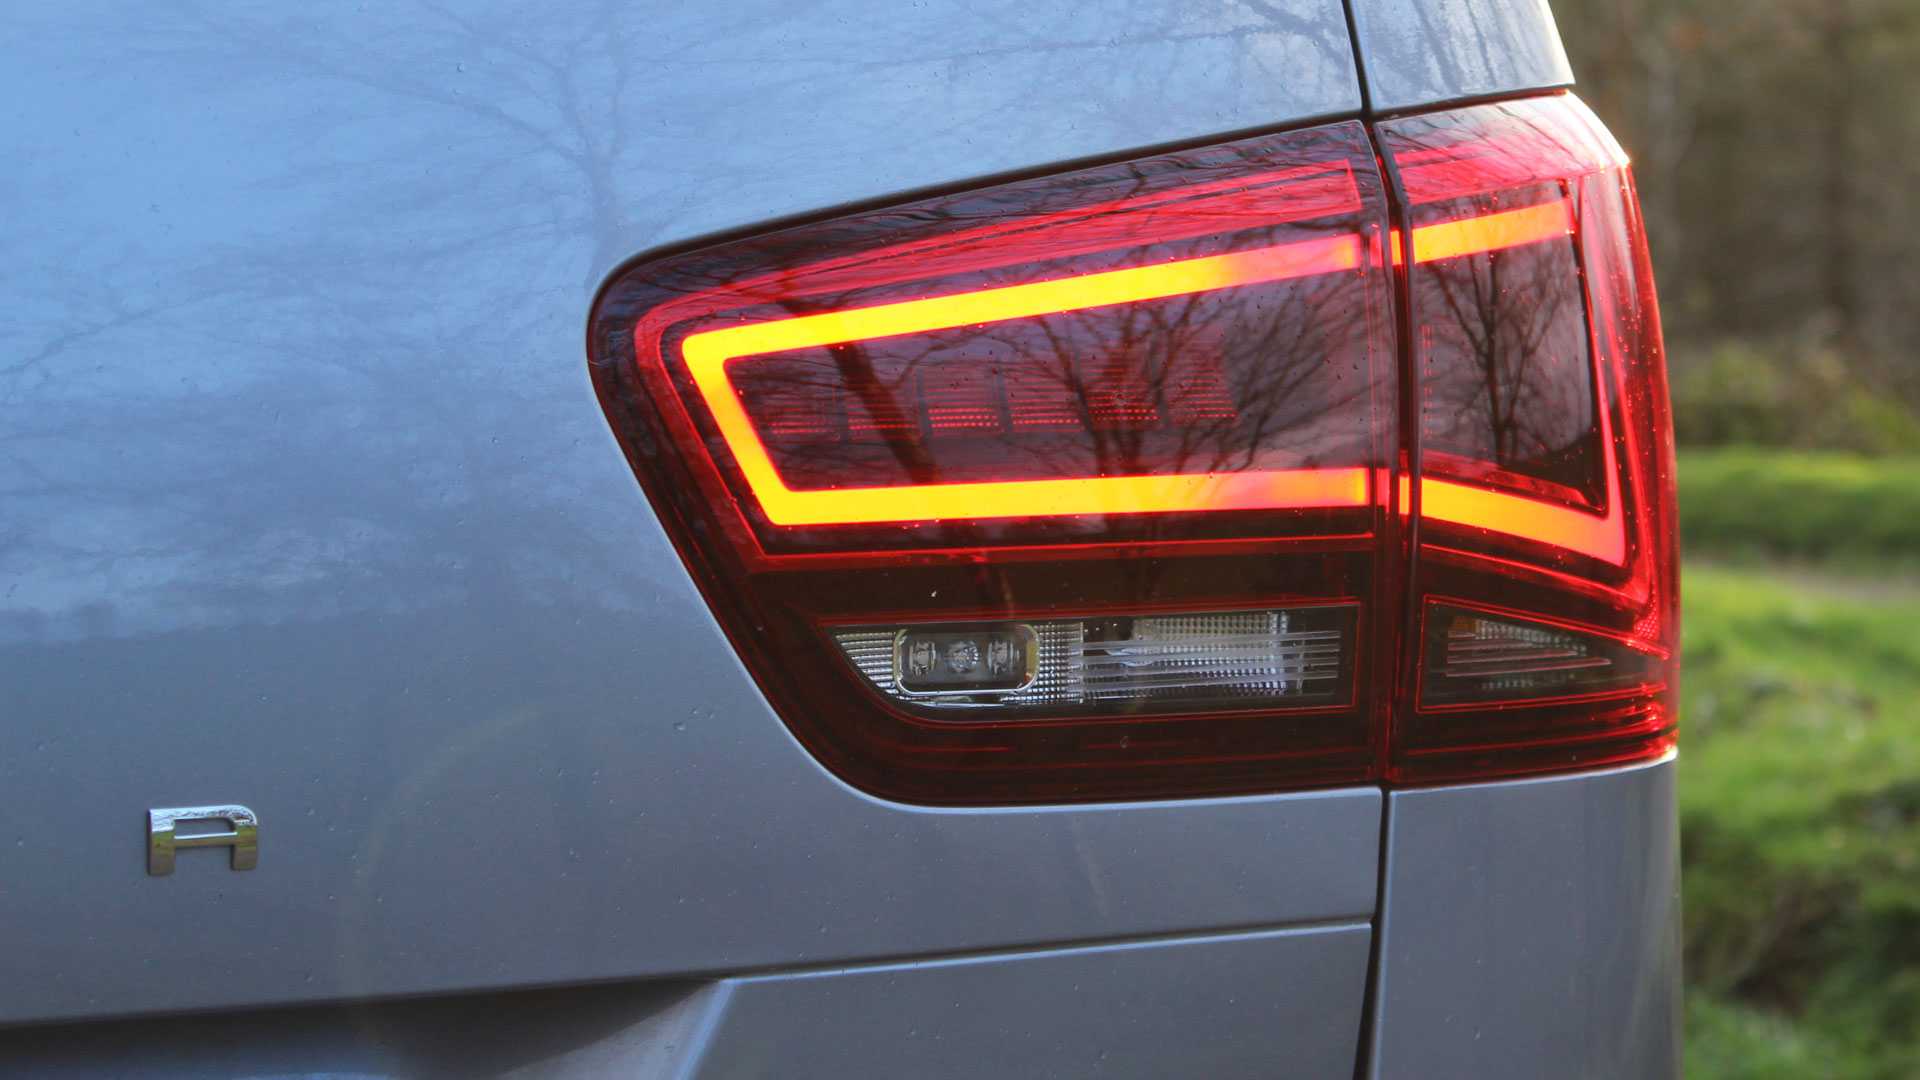 Seat Alhambra rear light